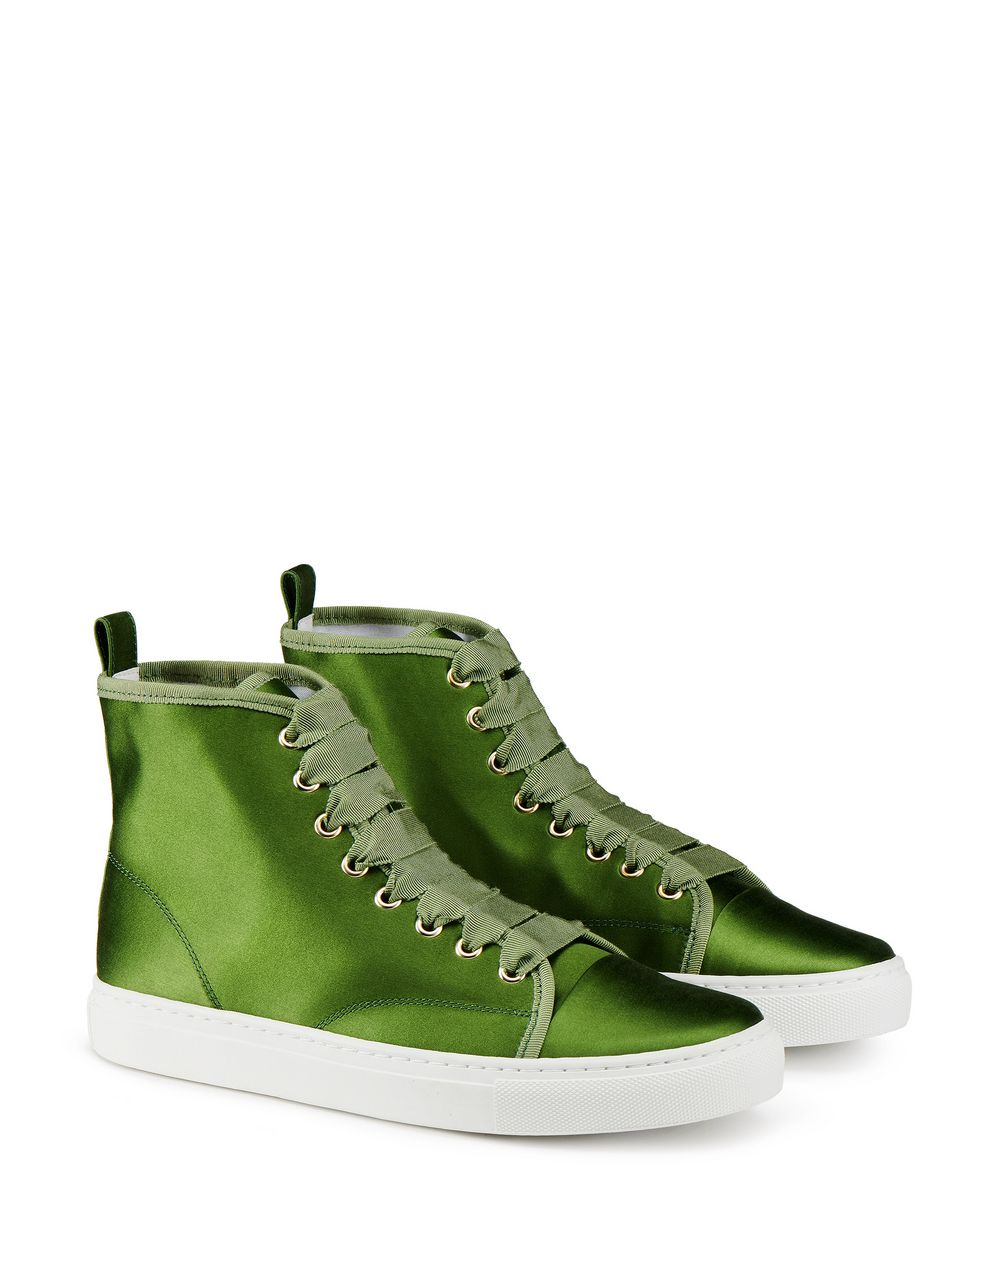 SATIN HIGH-TOP TRAINER - Lanvin